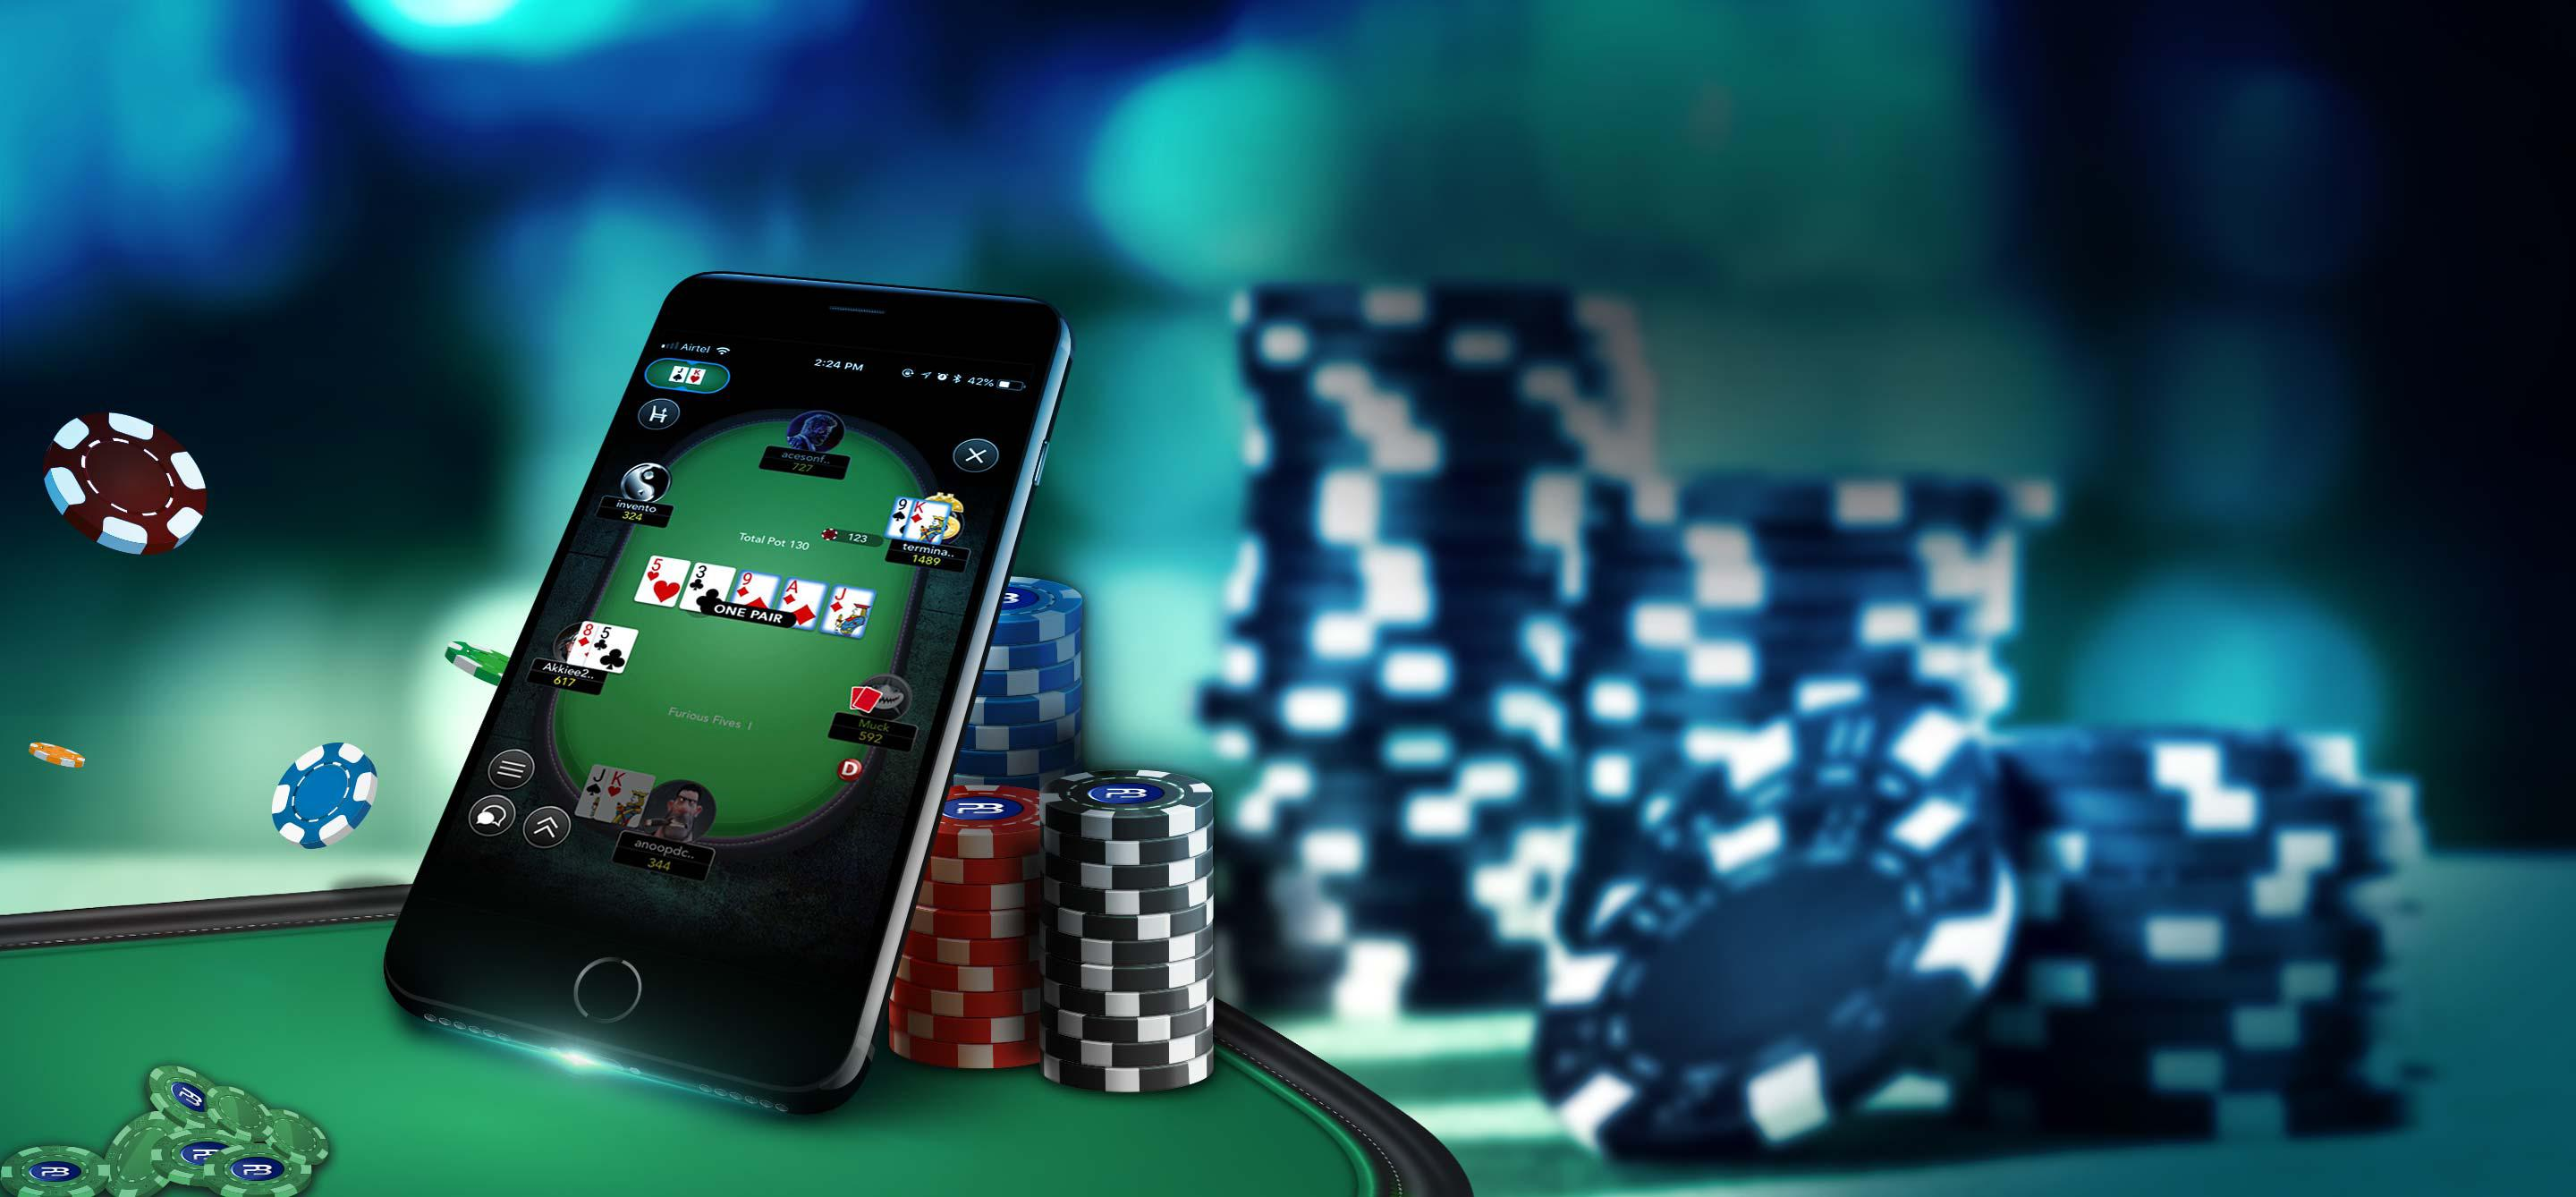 Enjoy an excellent poker online game through extraordinary applications